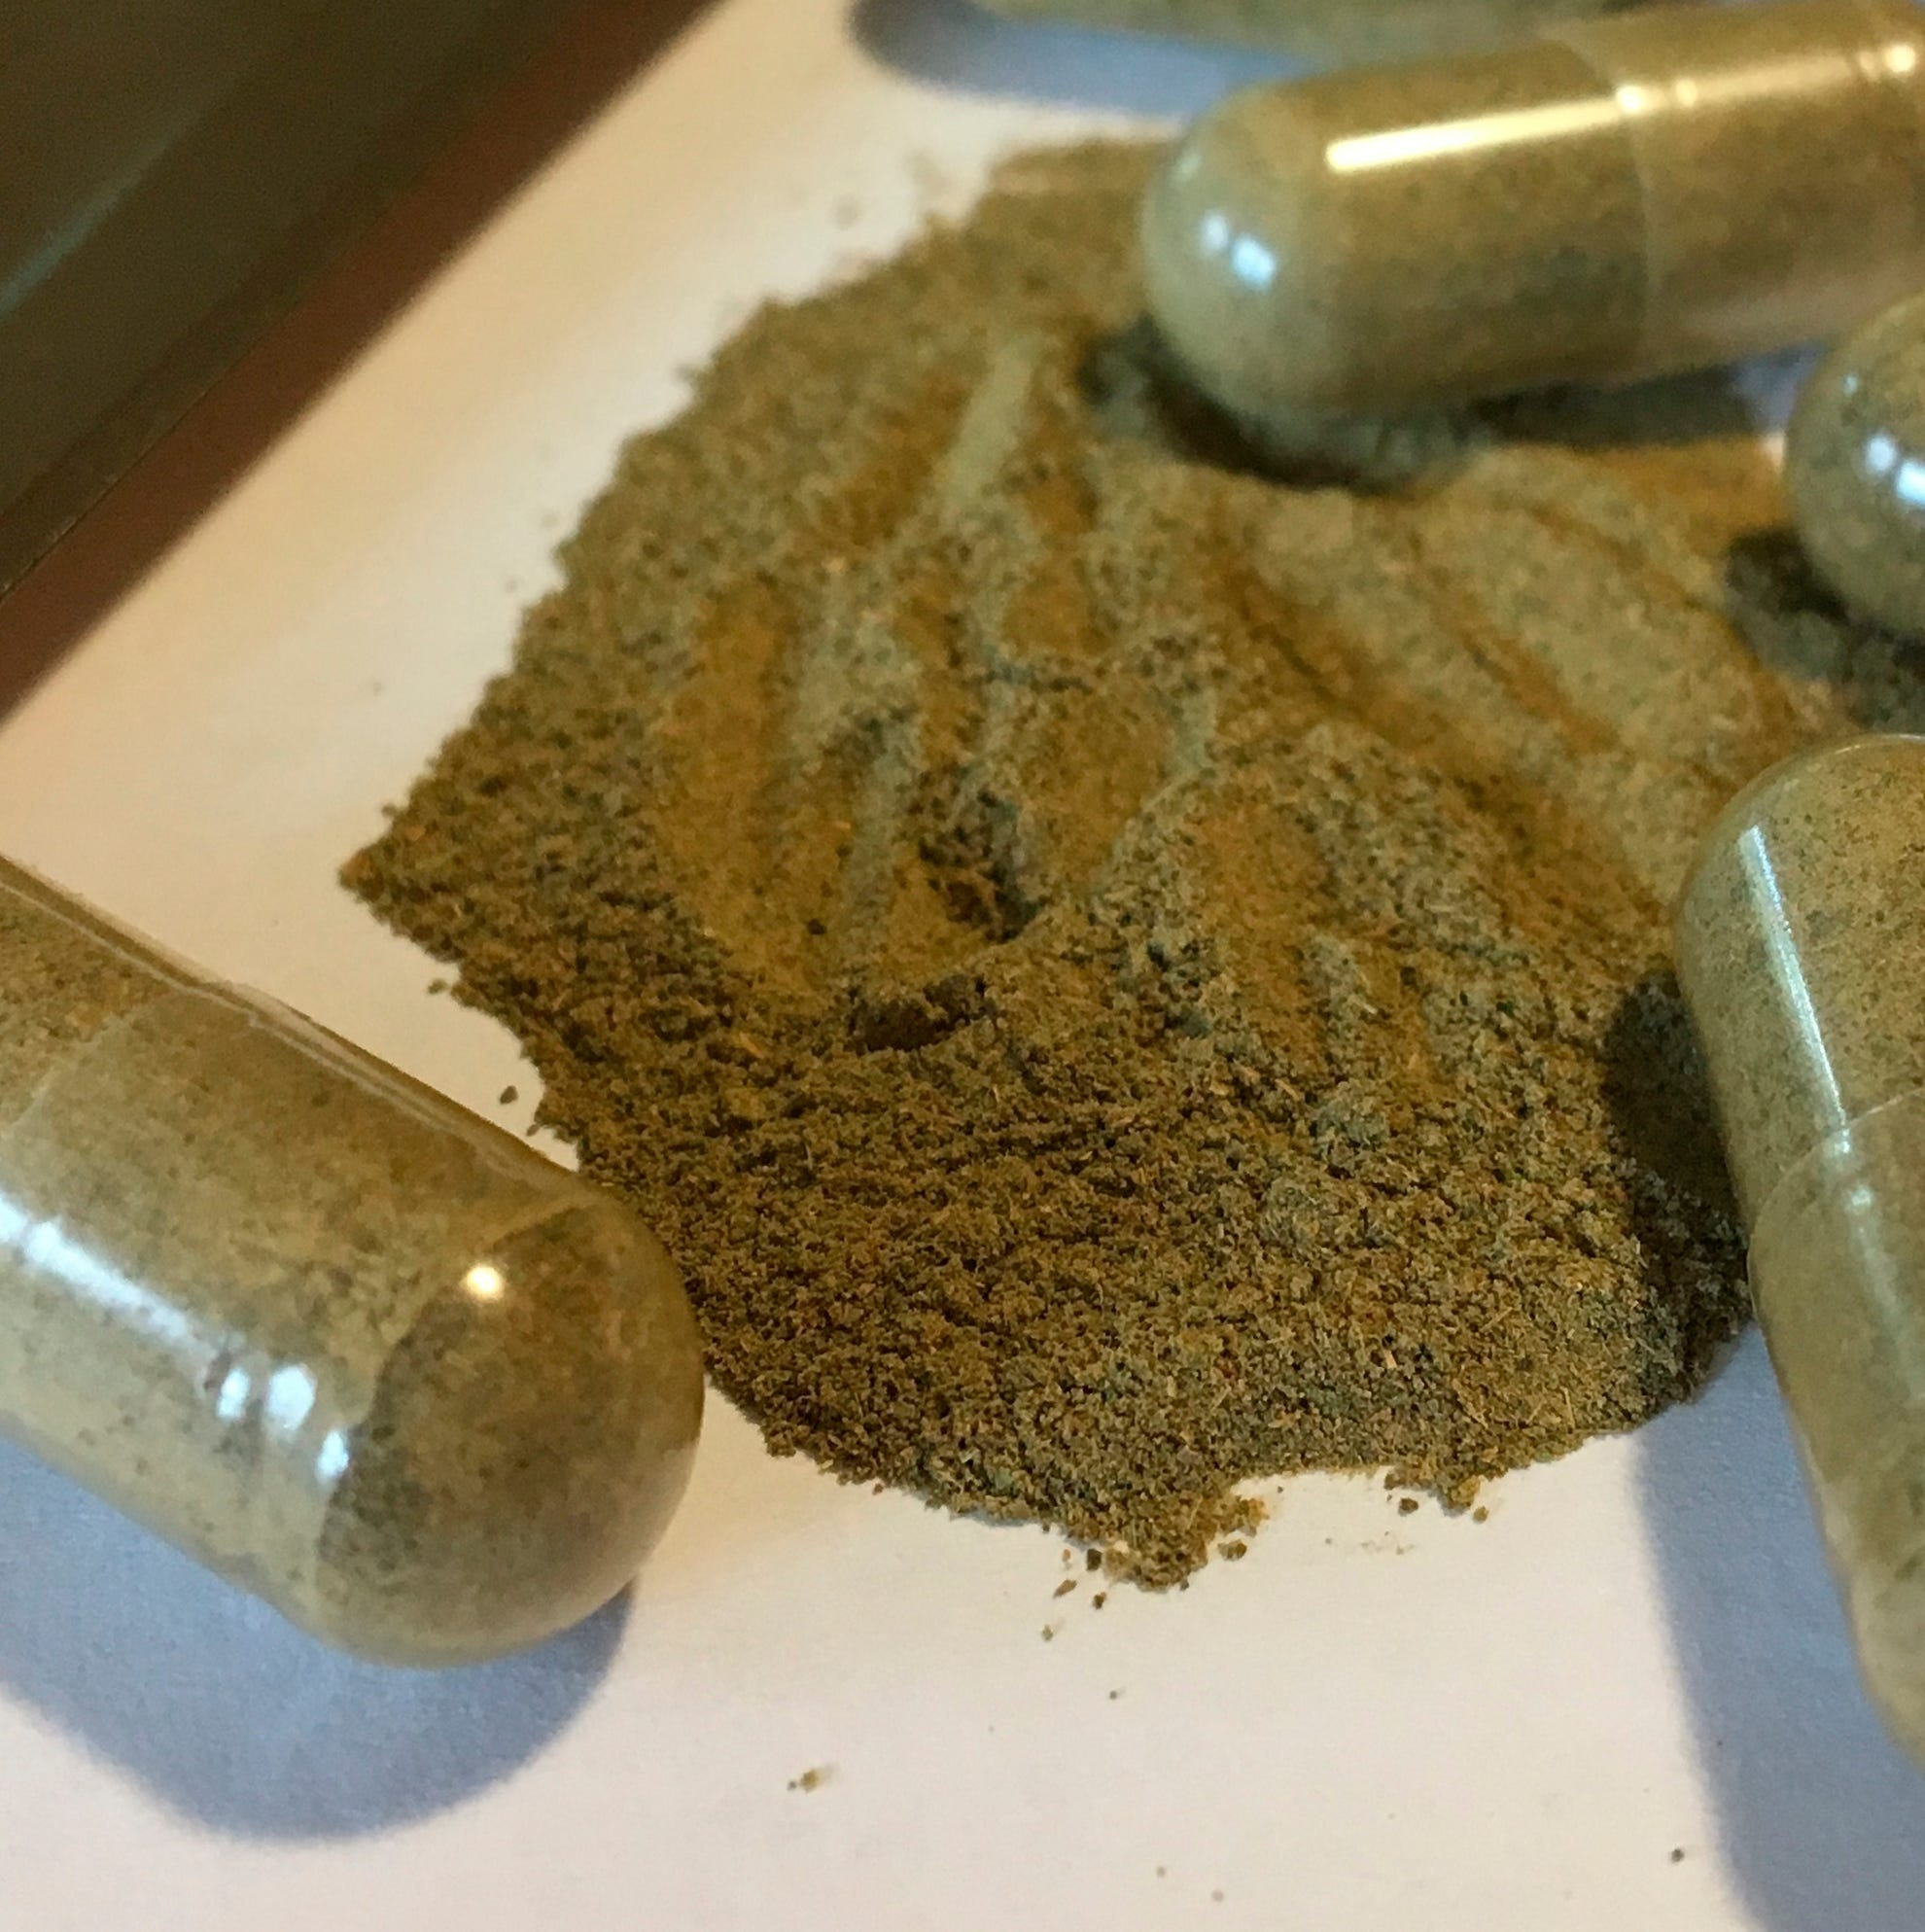 She moved to Mississippi so she could take kratom legally. Here's why that could end.